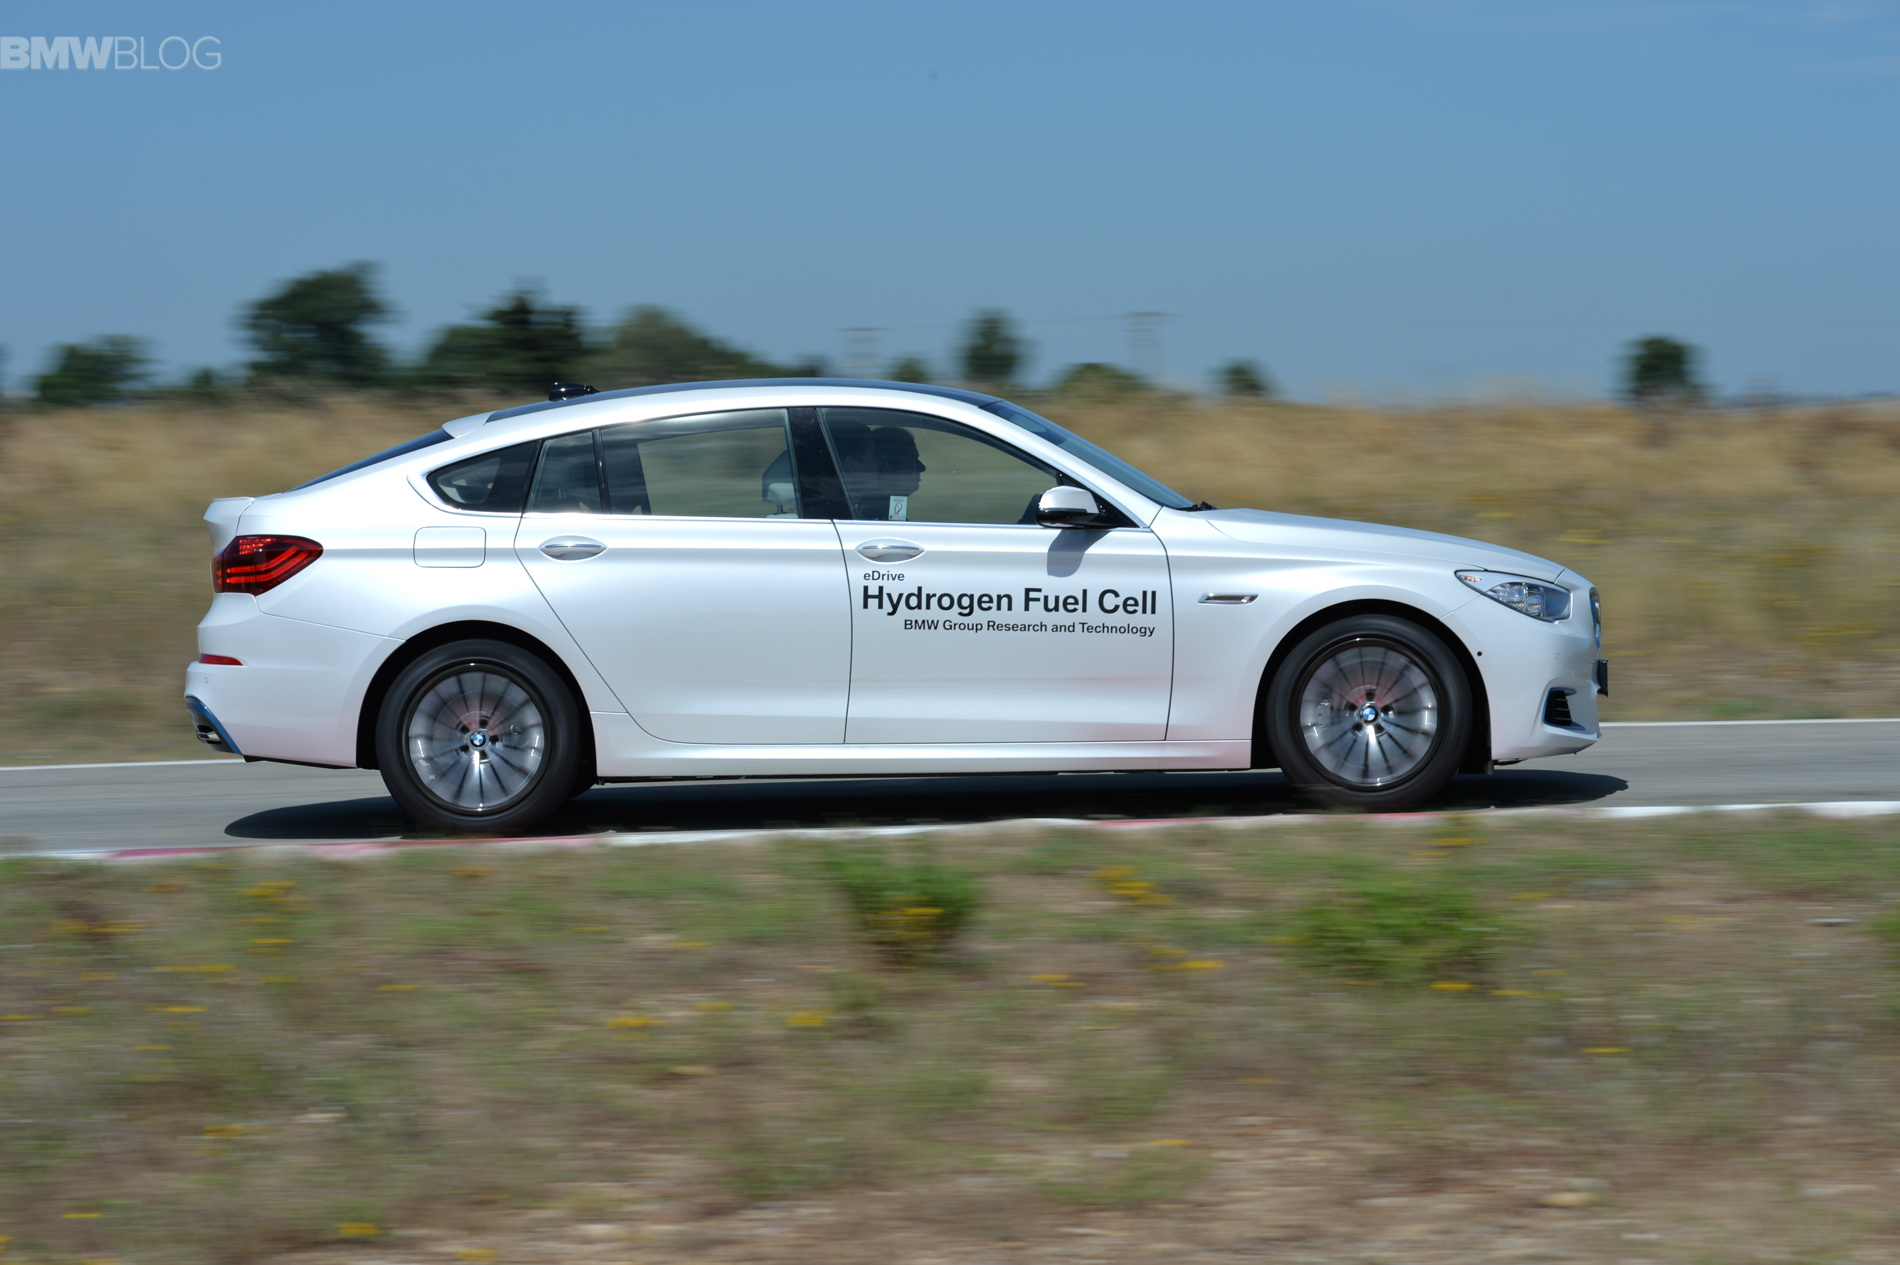 BMW 5 series gt hydrogen fuel cell images 36